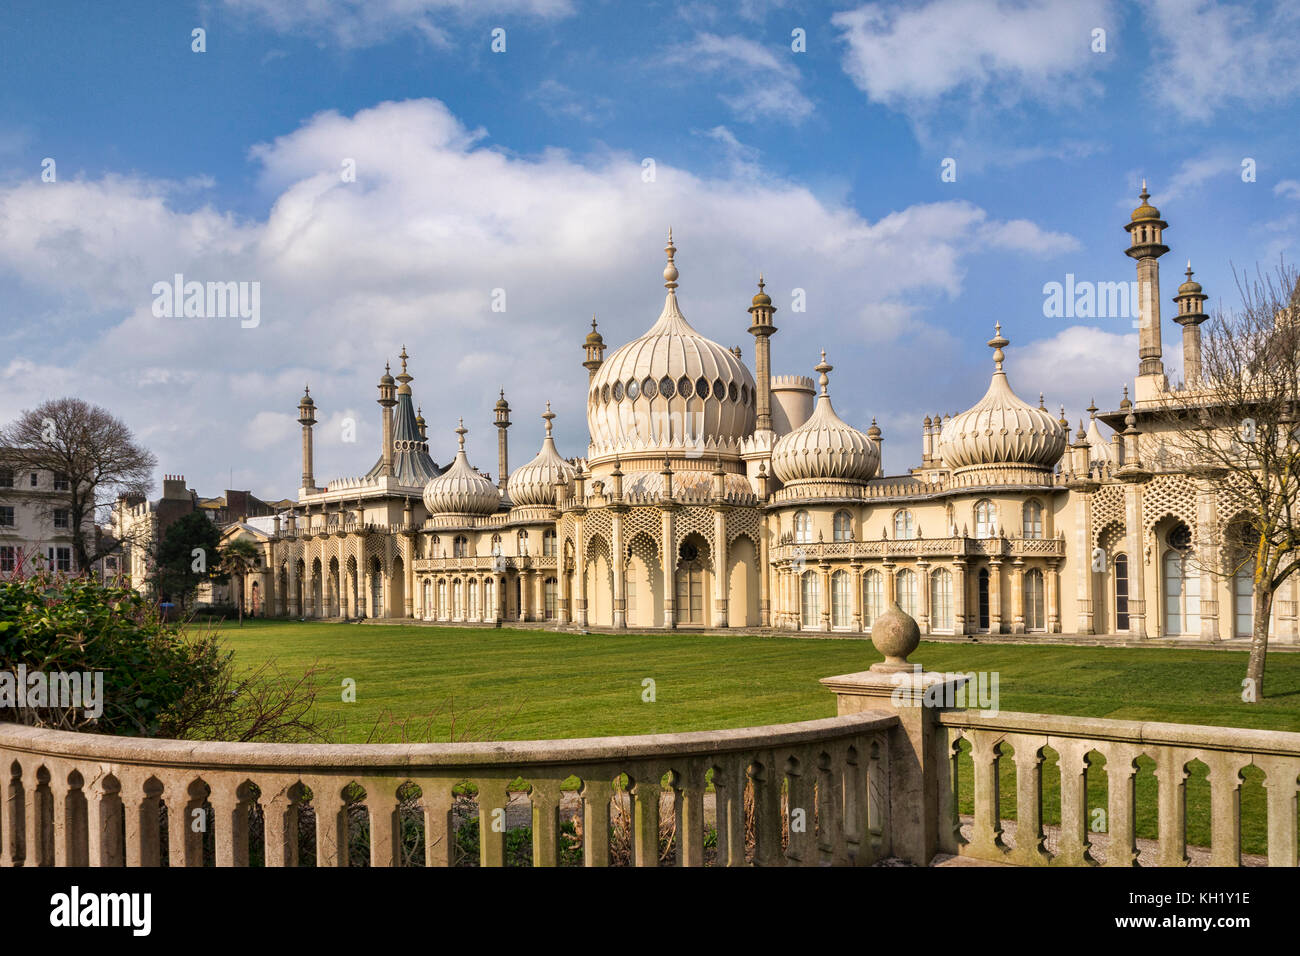 Royal Pavilion, Brighton, Sussex, England, UK. Stockbild